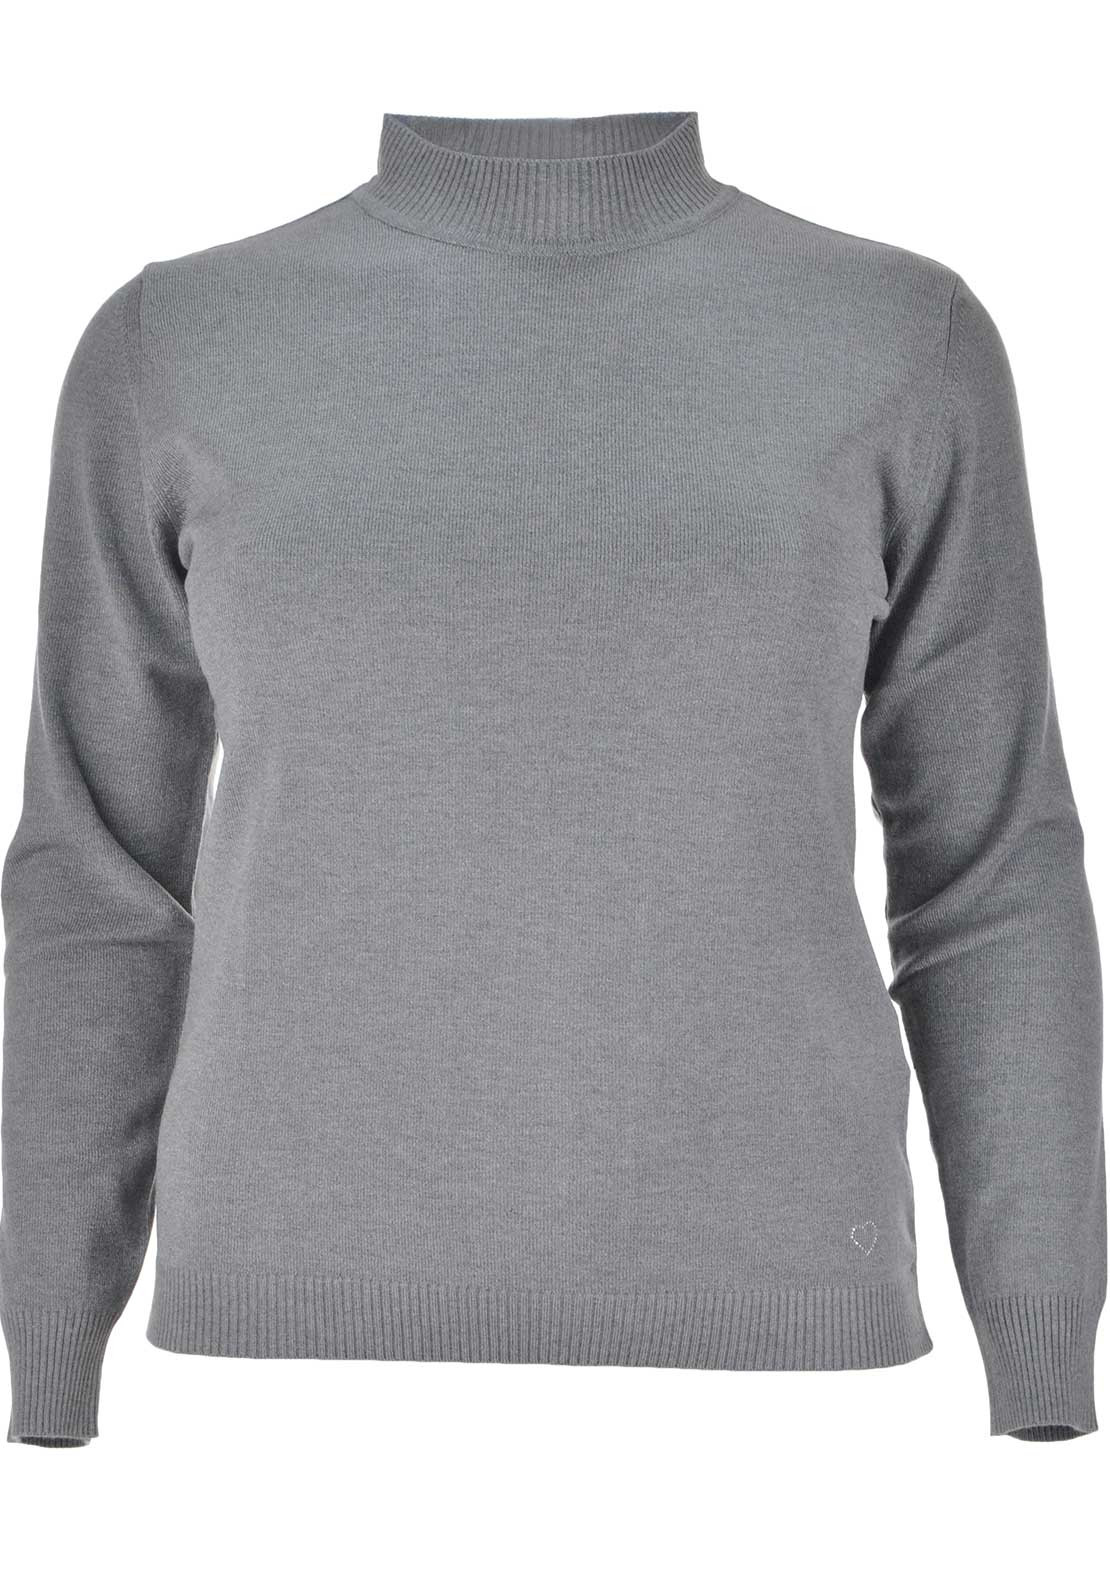 Lebek Ribbed Polo Neck Sweater Jumper, Grey